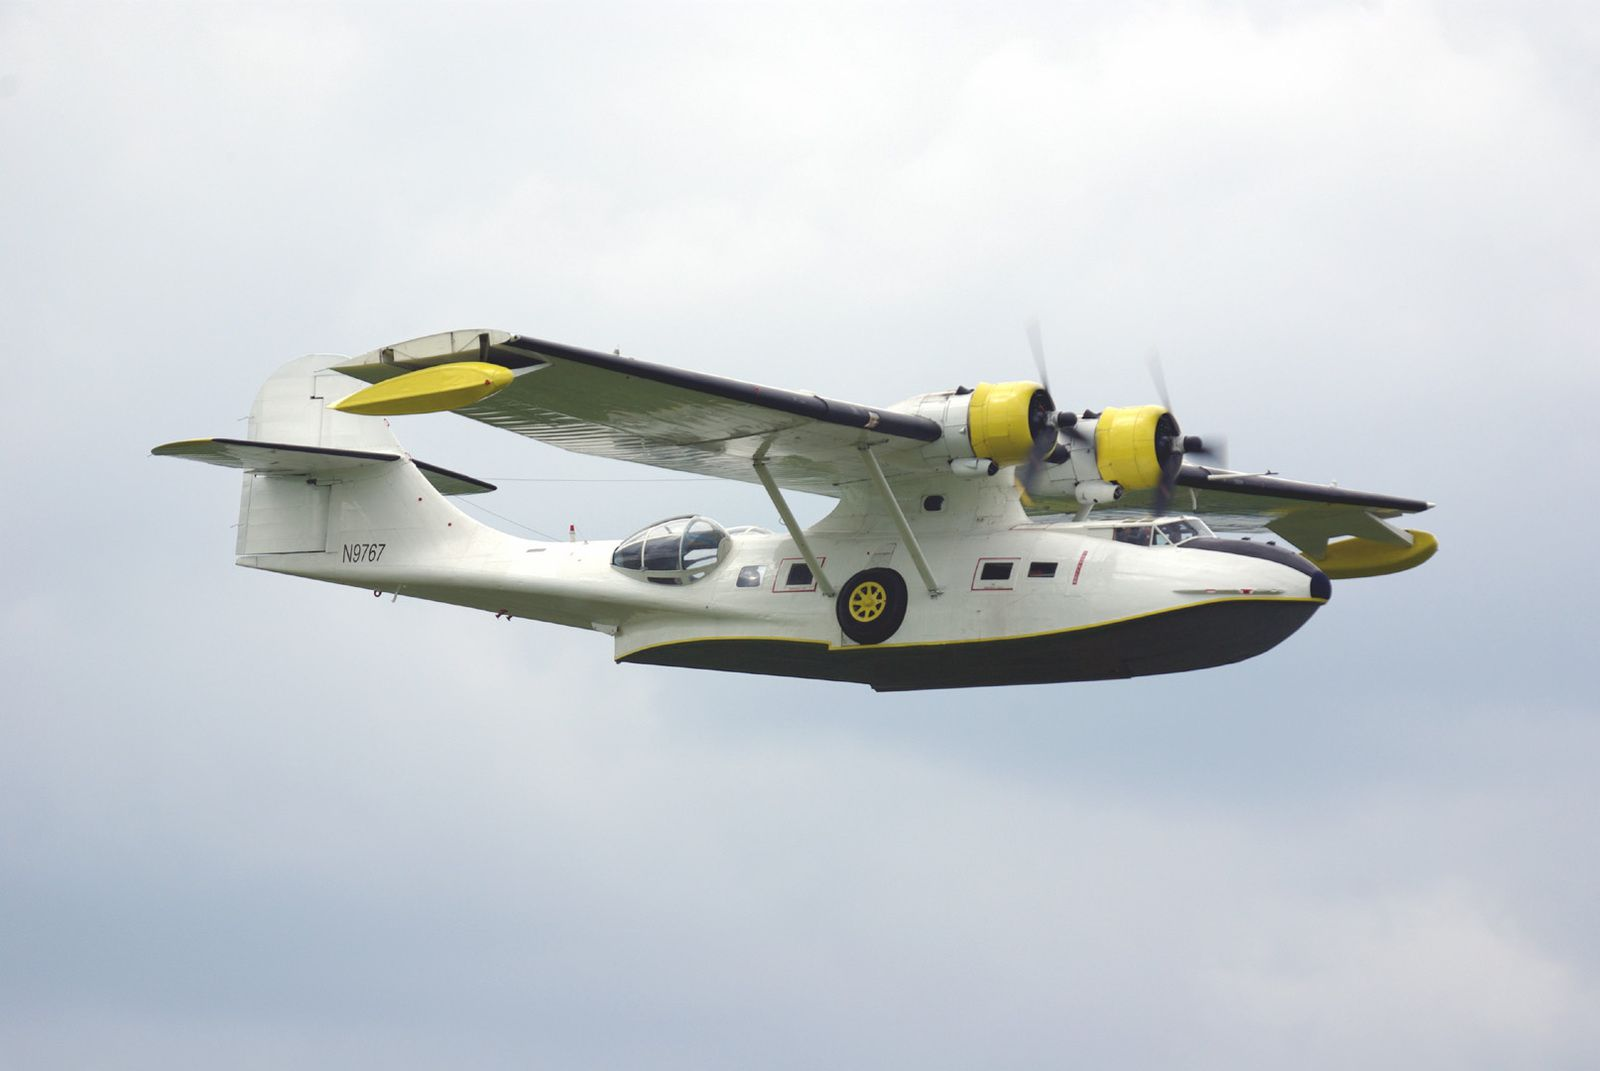 Le Consolidated PBY-5A Catalina N9767 de France's Flying Warbirds de Melun.